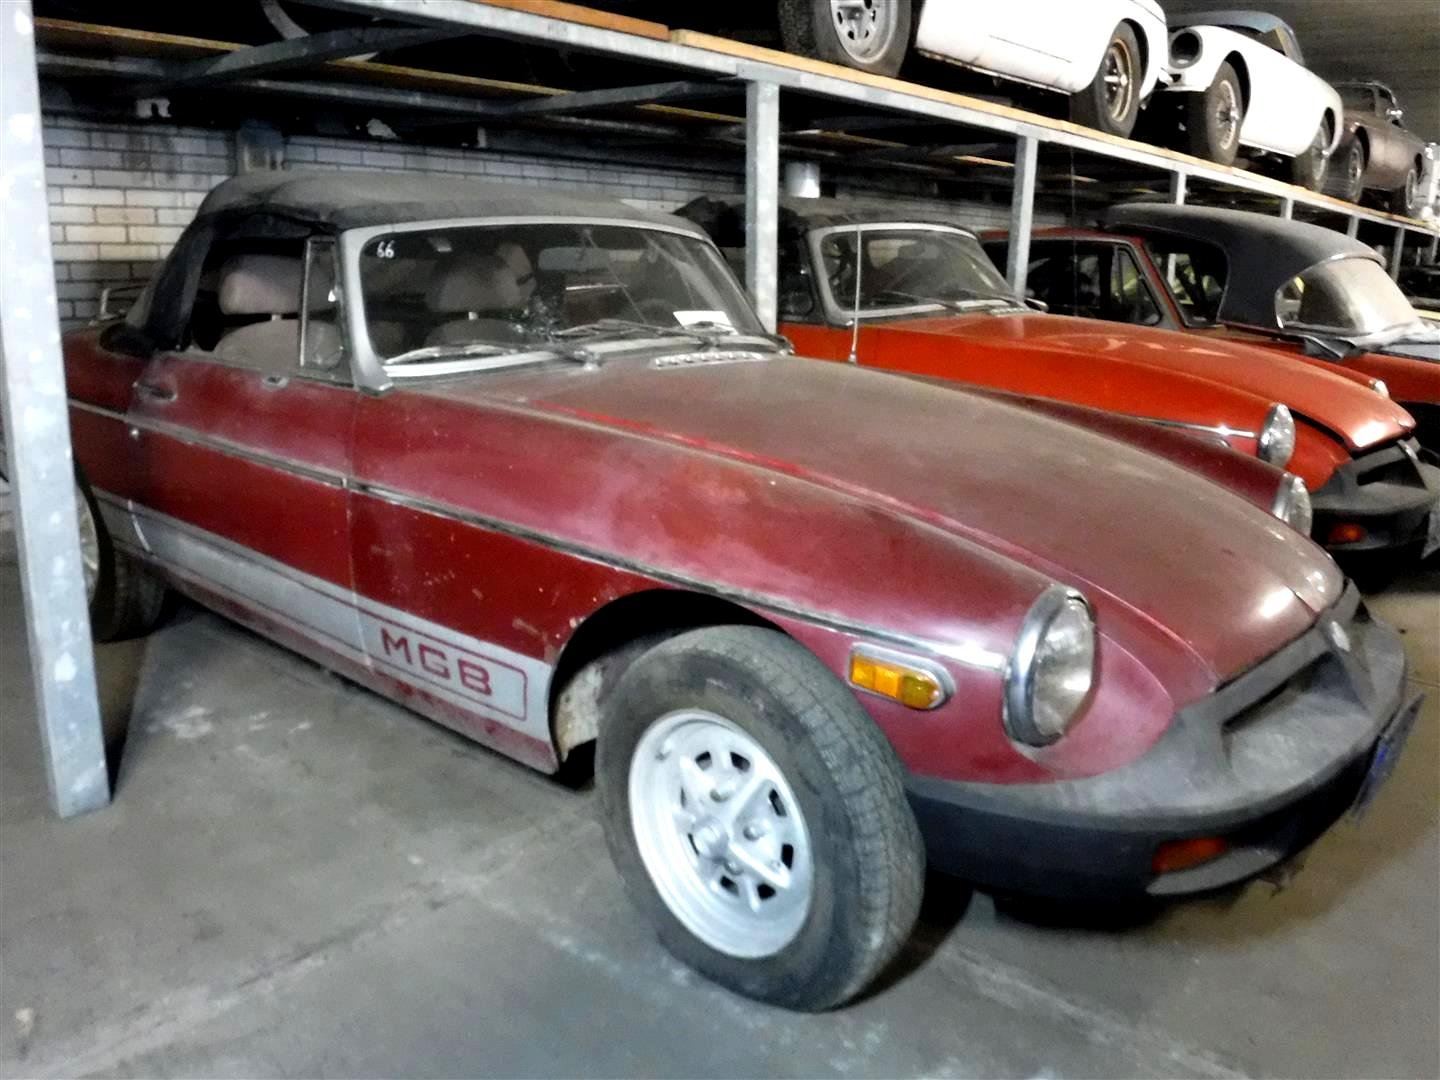 1979 MG B '79 (to restore!) For Sale (picture 1 of 6)